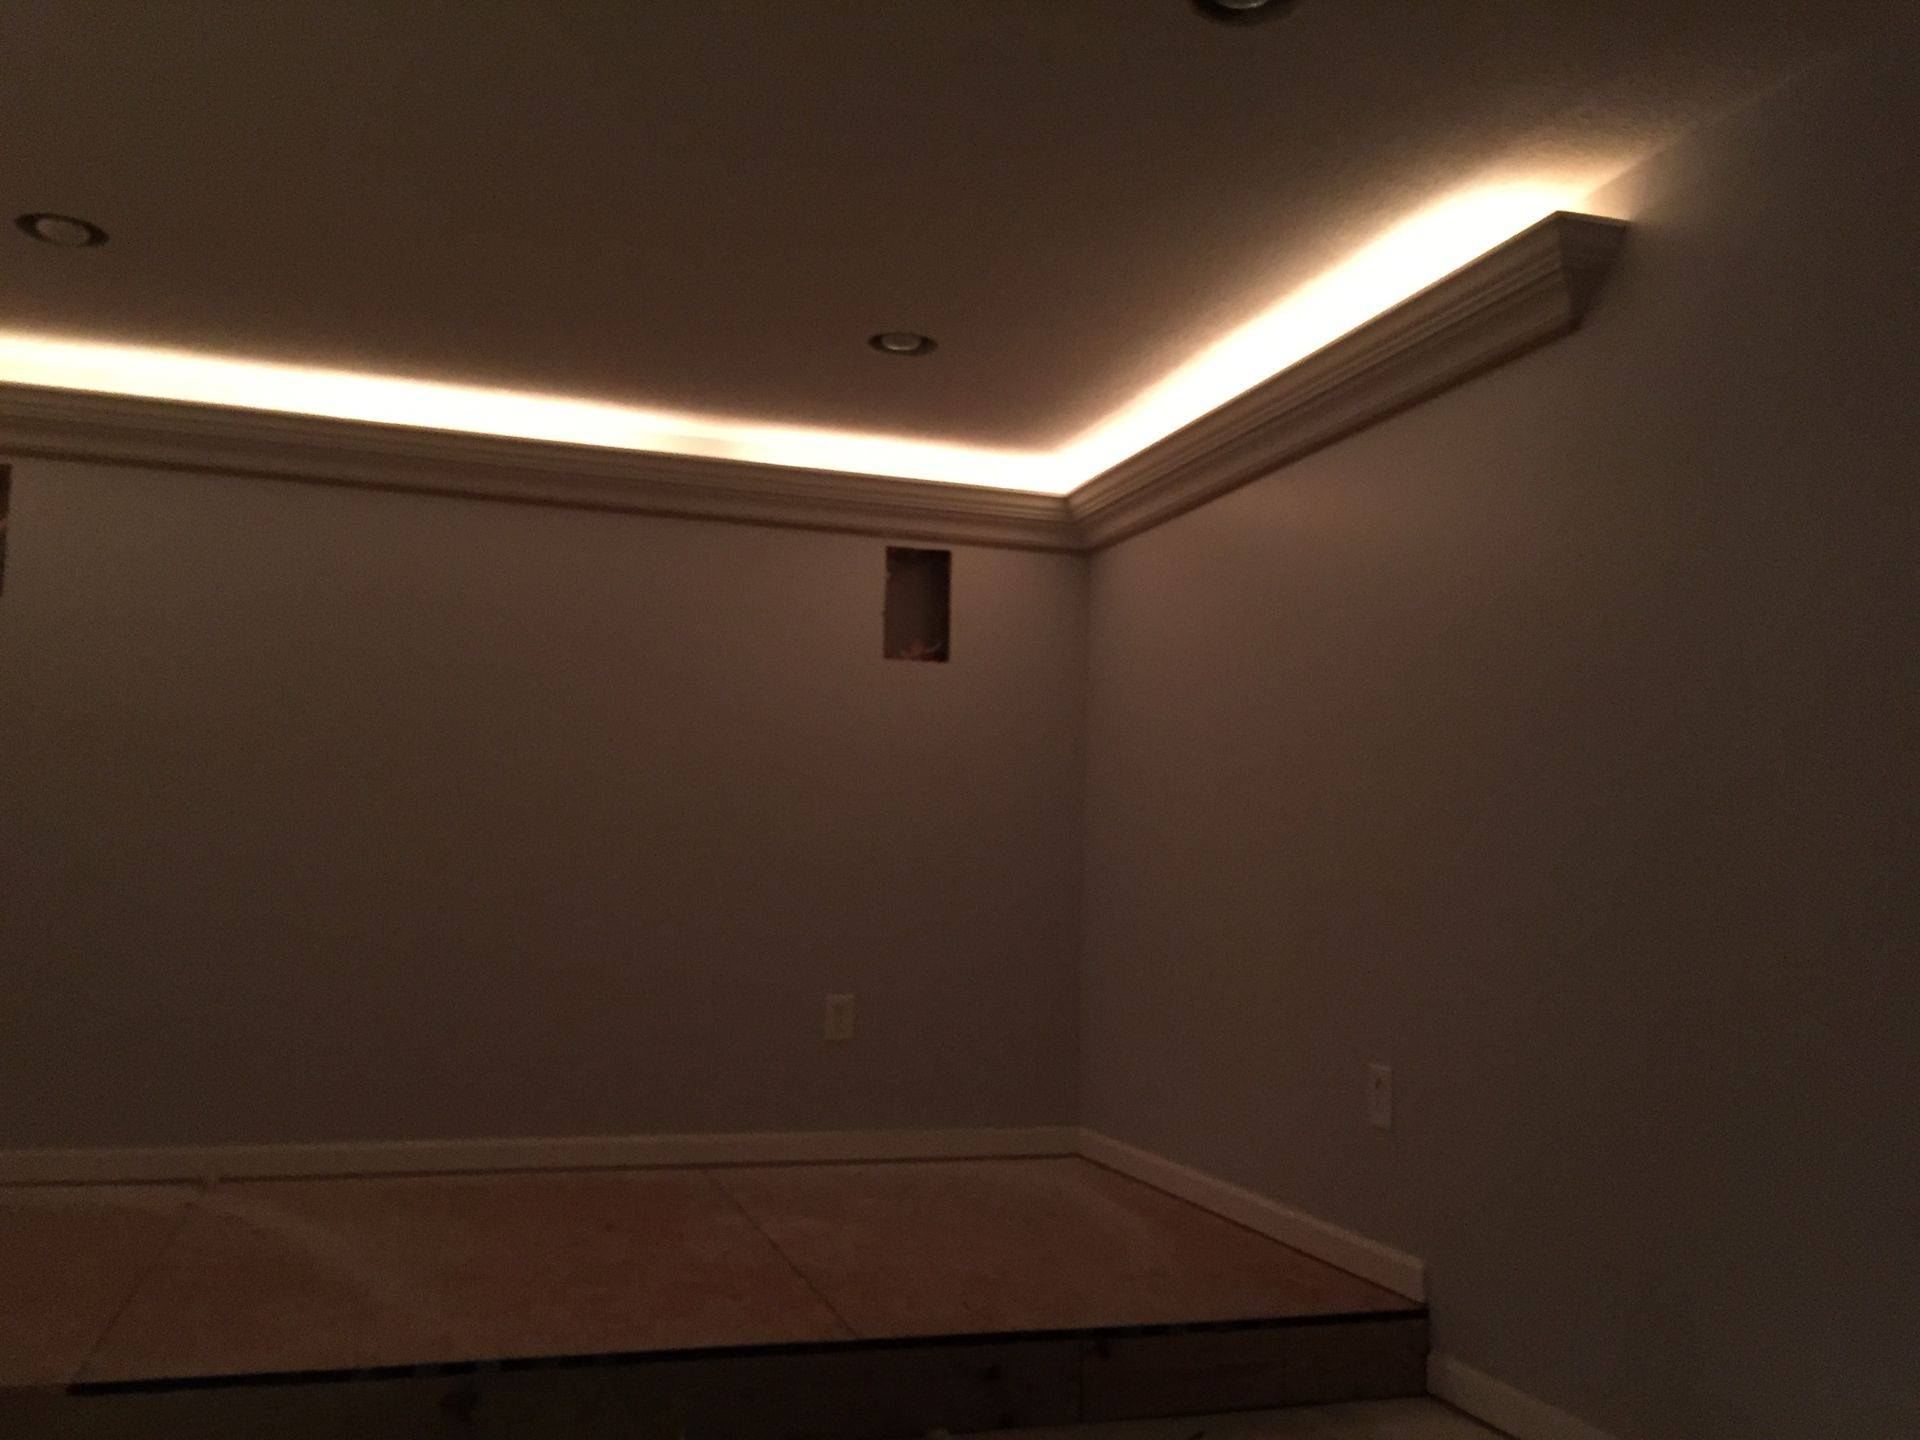 Crown Moulding With Indirect Lighting